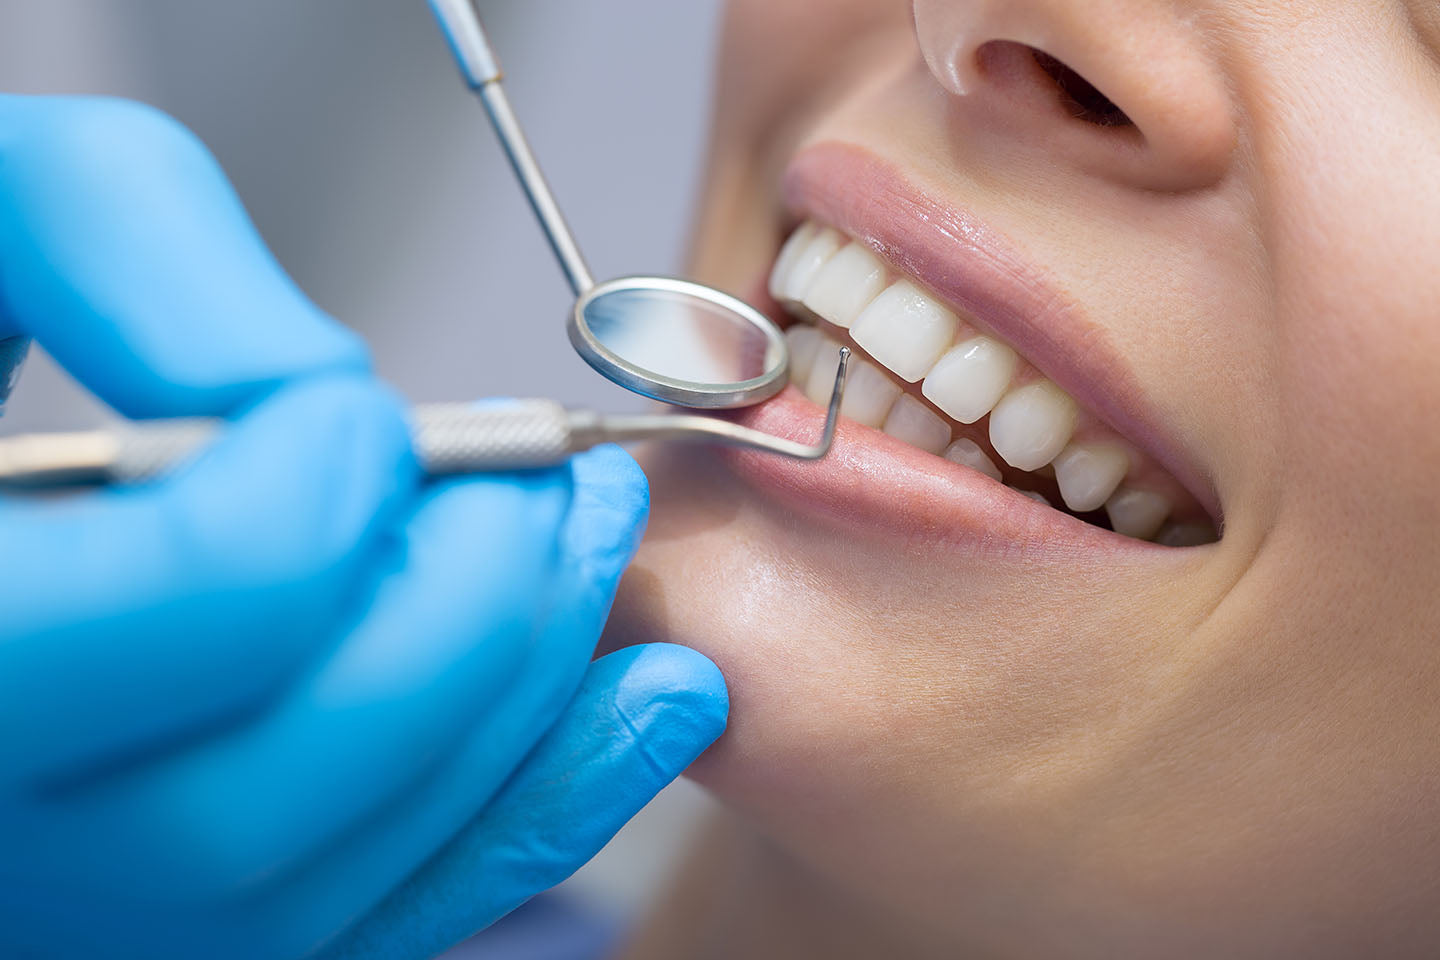 Good Oral Hygiene May Help Reduce Risk of Heart Infection